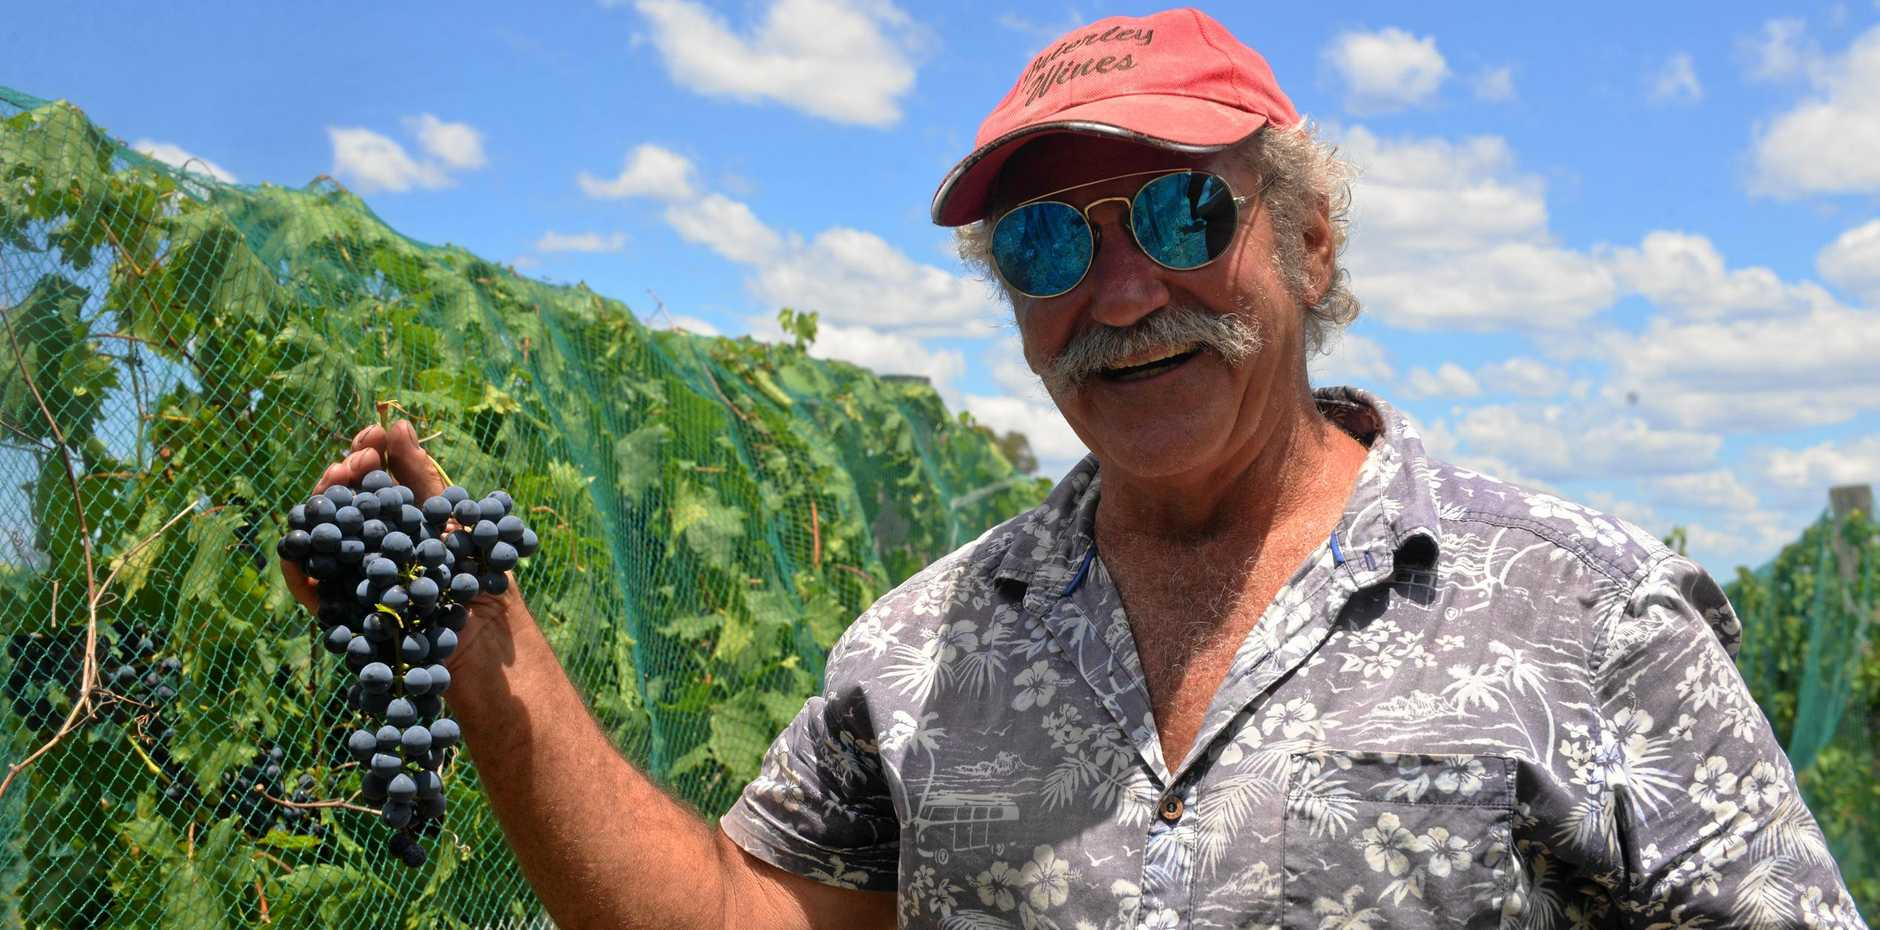 HEARD IT THROUGH THE GRAPEVINE: Vintner Tony Brierley at the Childers winery Brierley Wines.